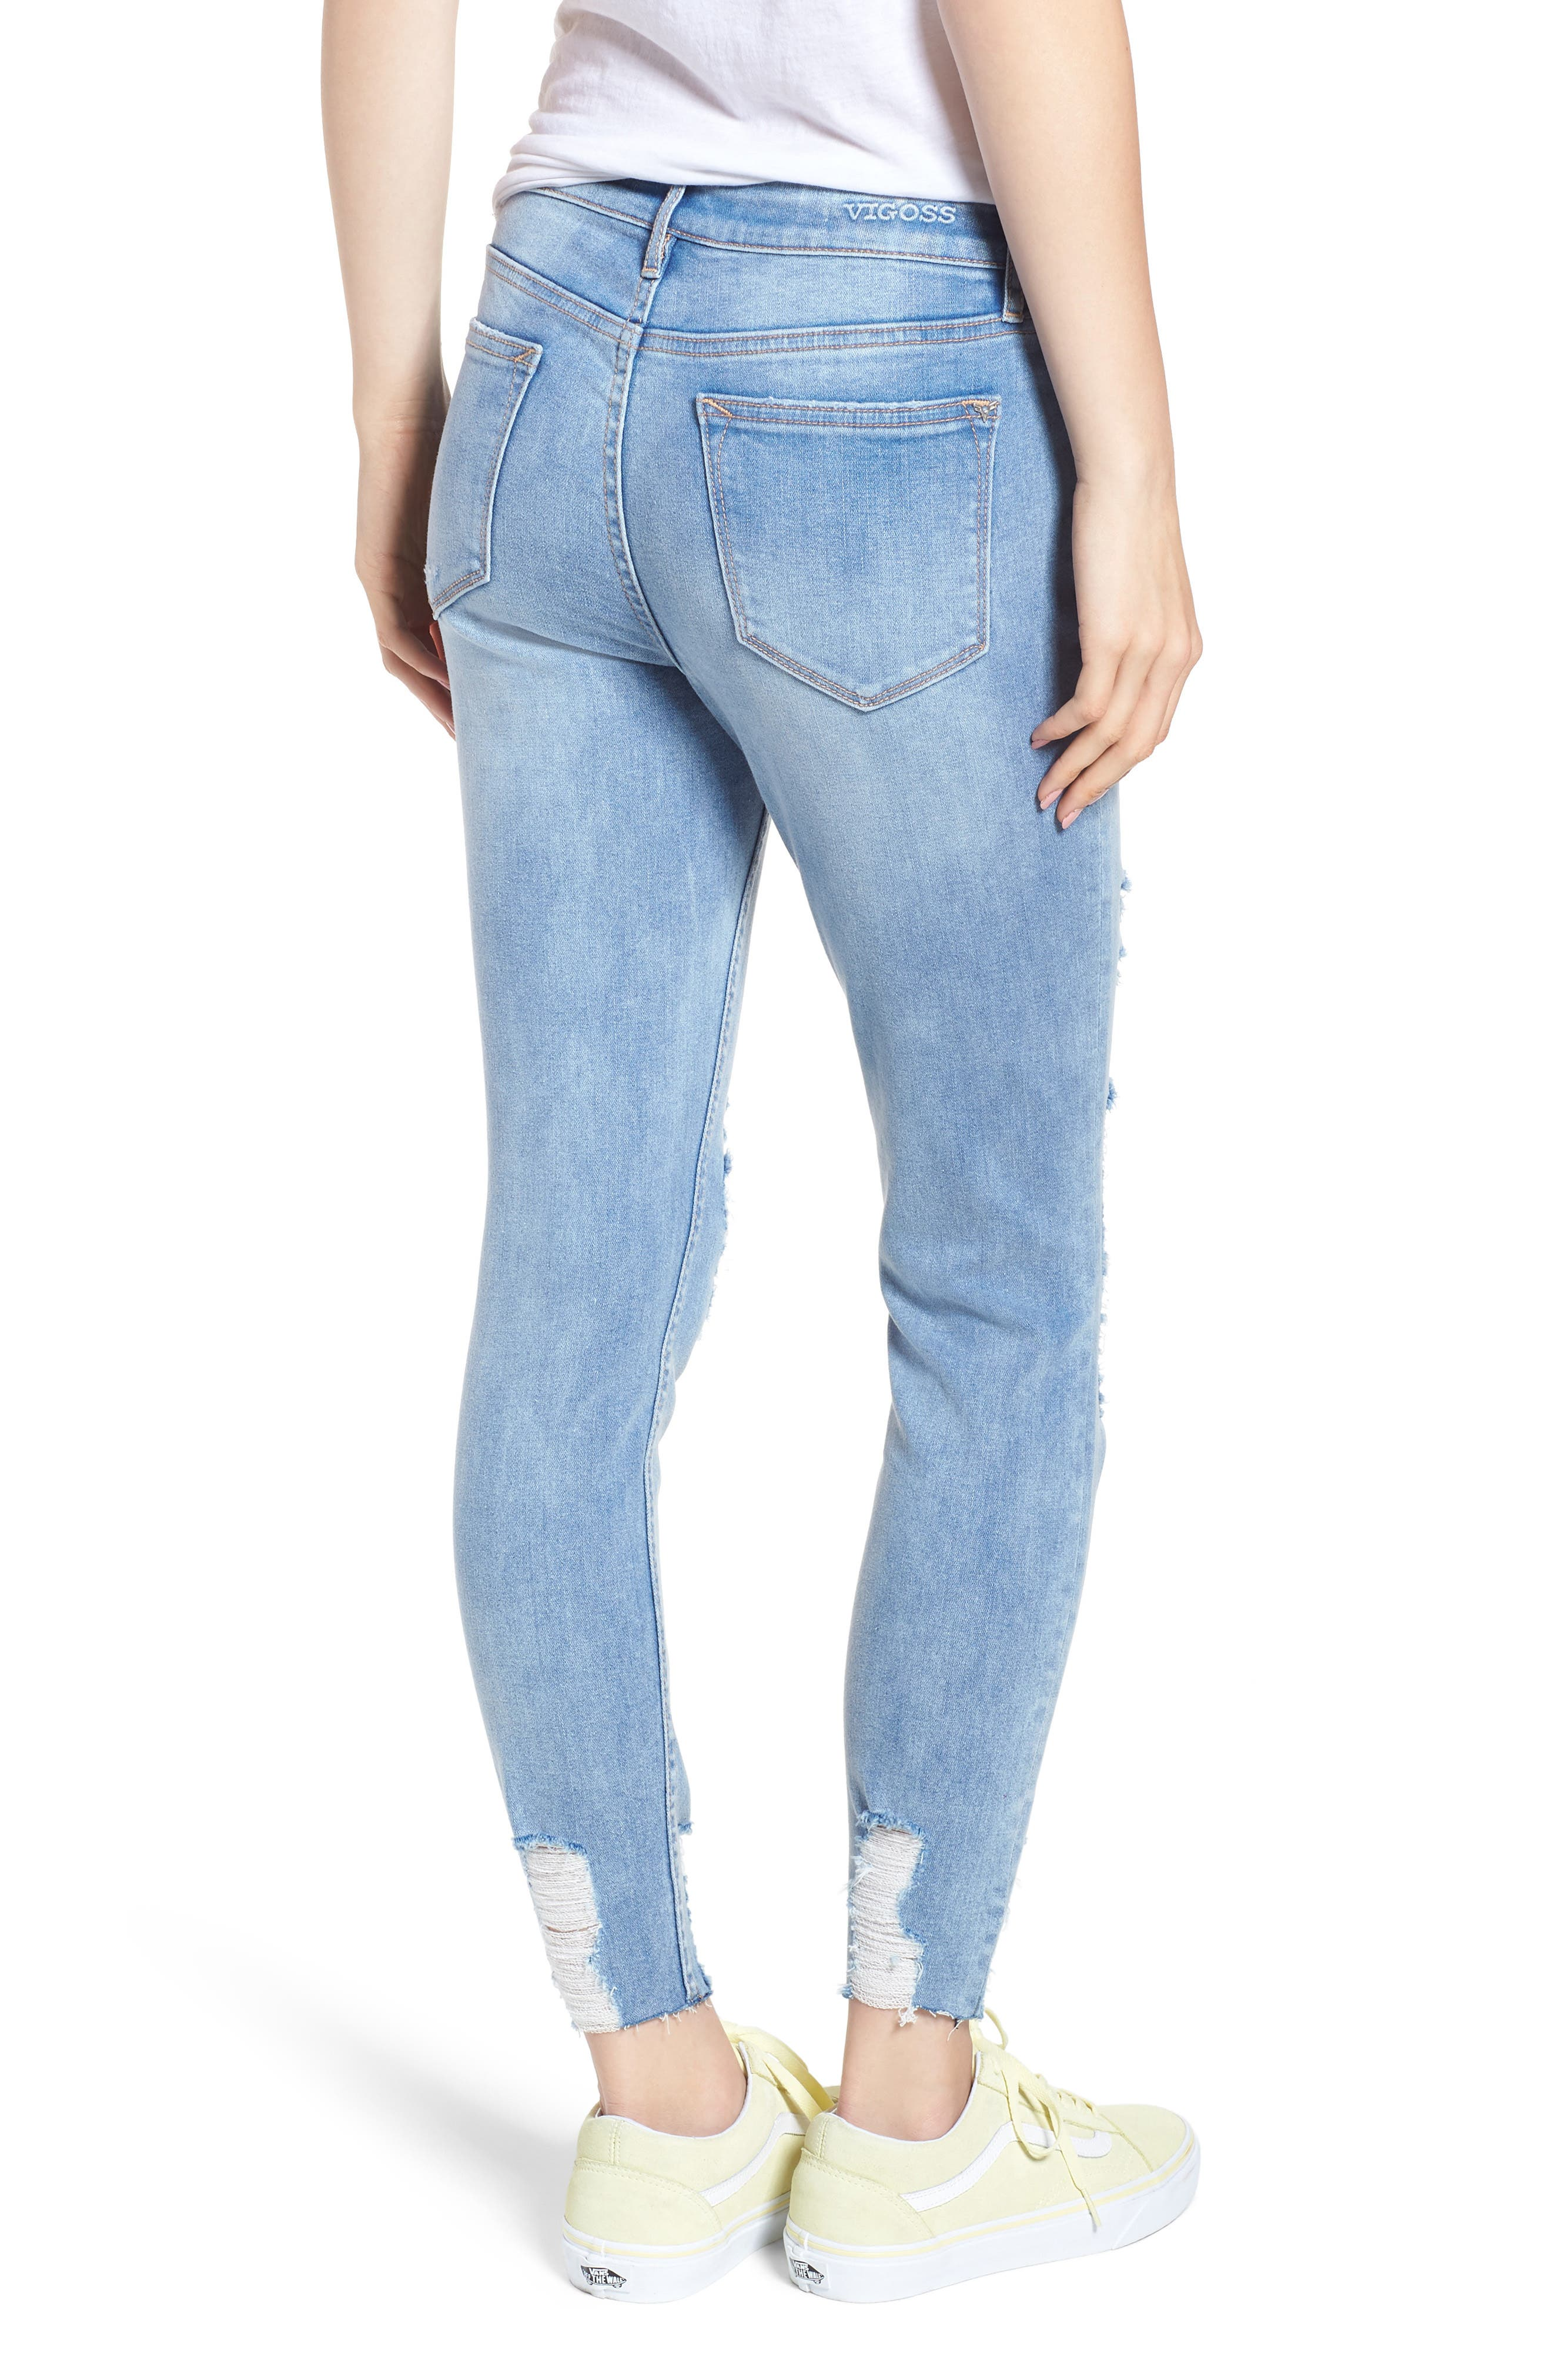 Marley Distressed Crop Skinny Jeans,                             Alternate thumbnail 2, color,                             461